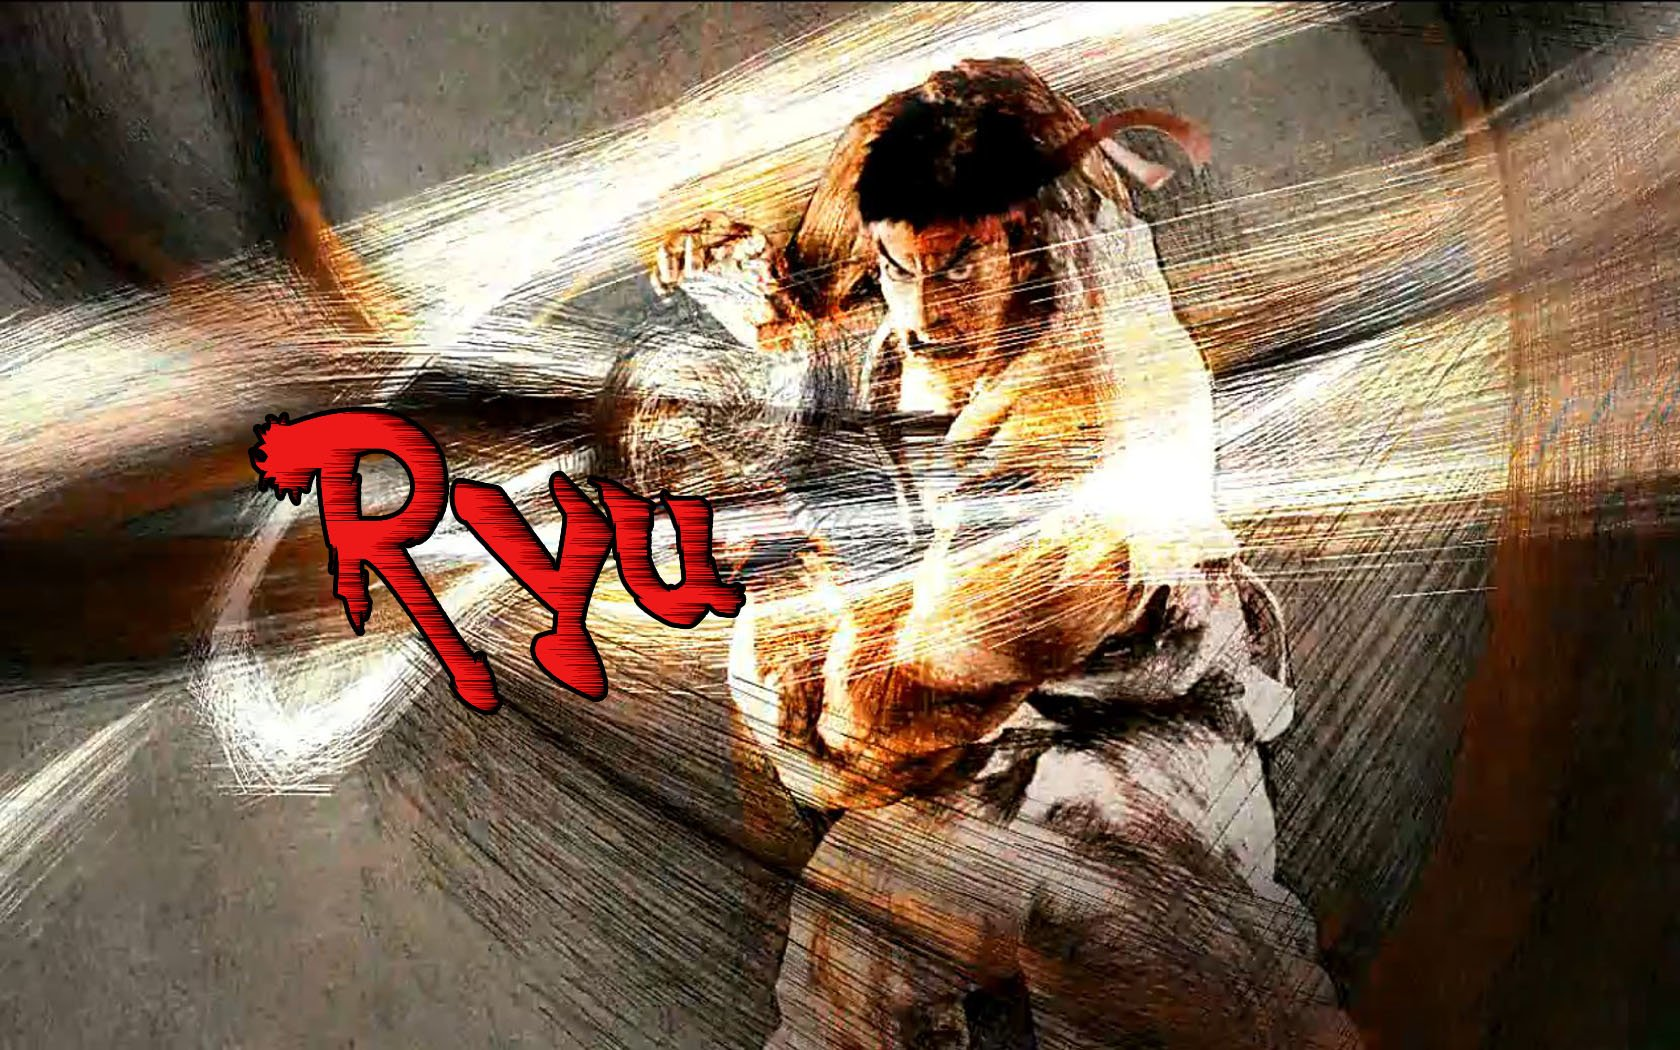 Ryu wallpaper and background image 1680x1050 id 264340 - Street fighter wallpaper akuma ...